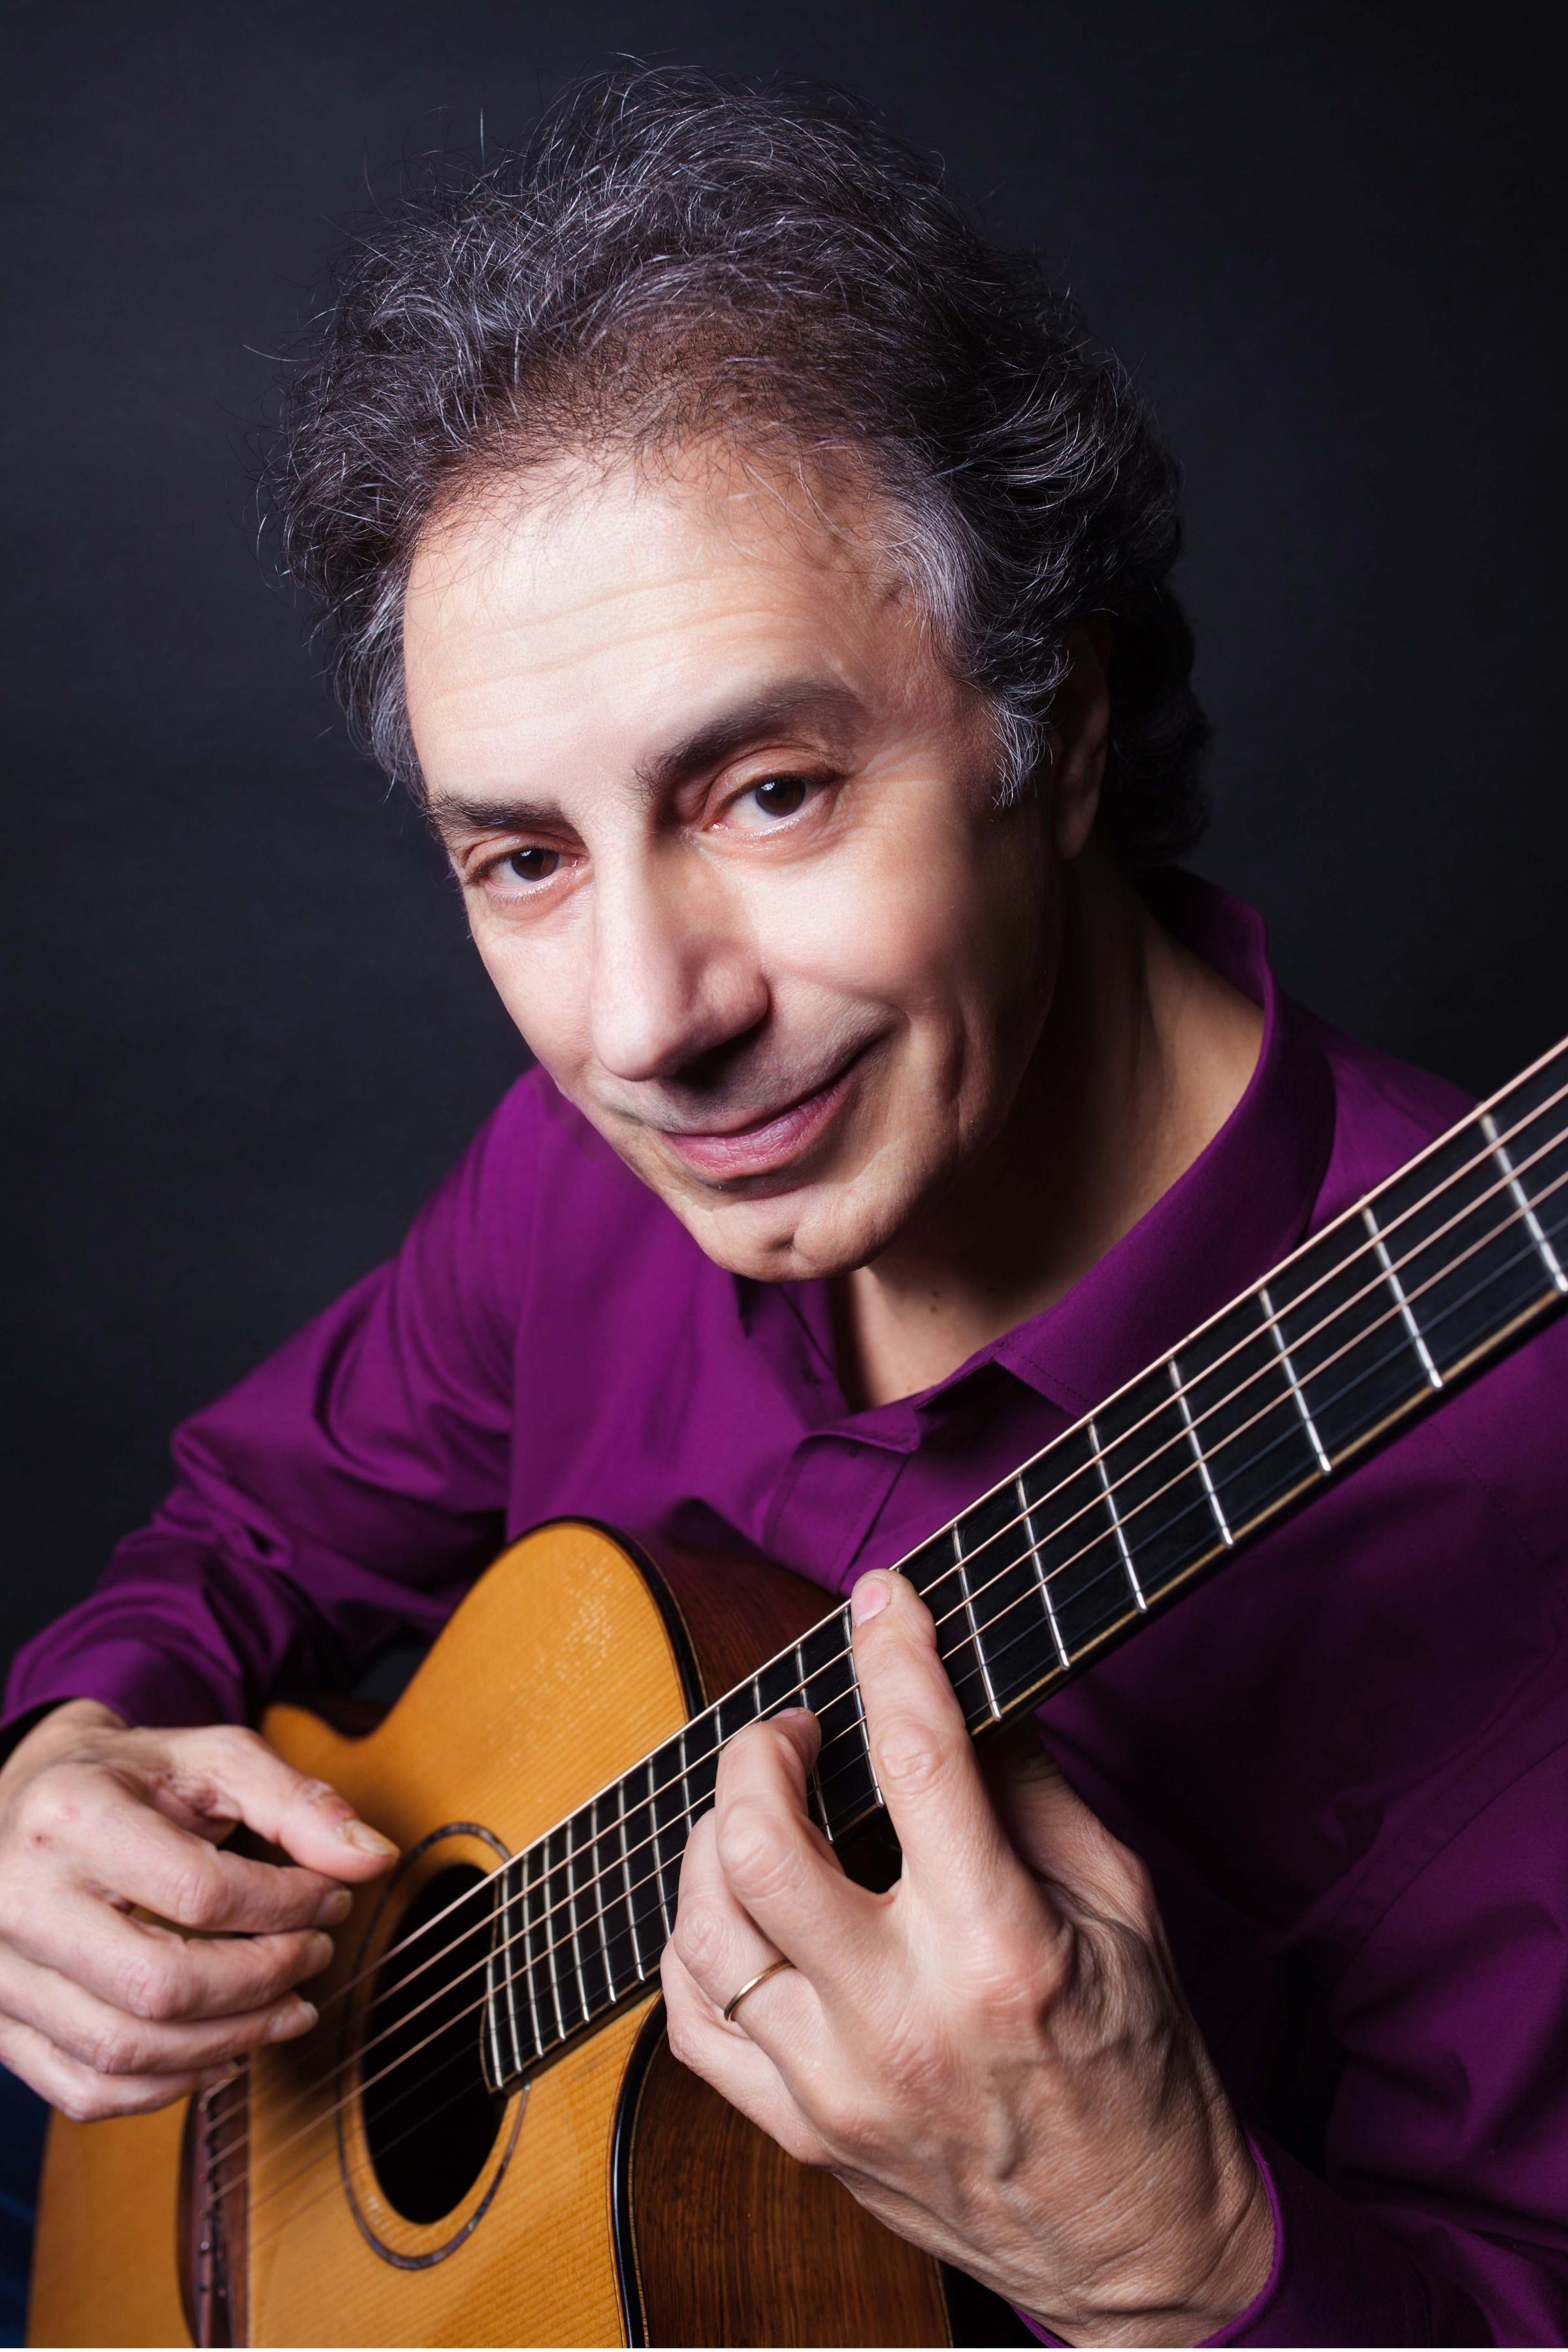 Pierre Bensusan, France's Acoustic Guitar Master In Concert!